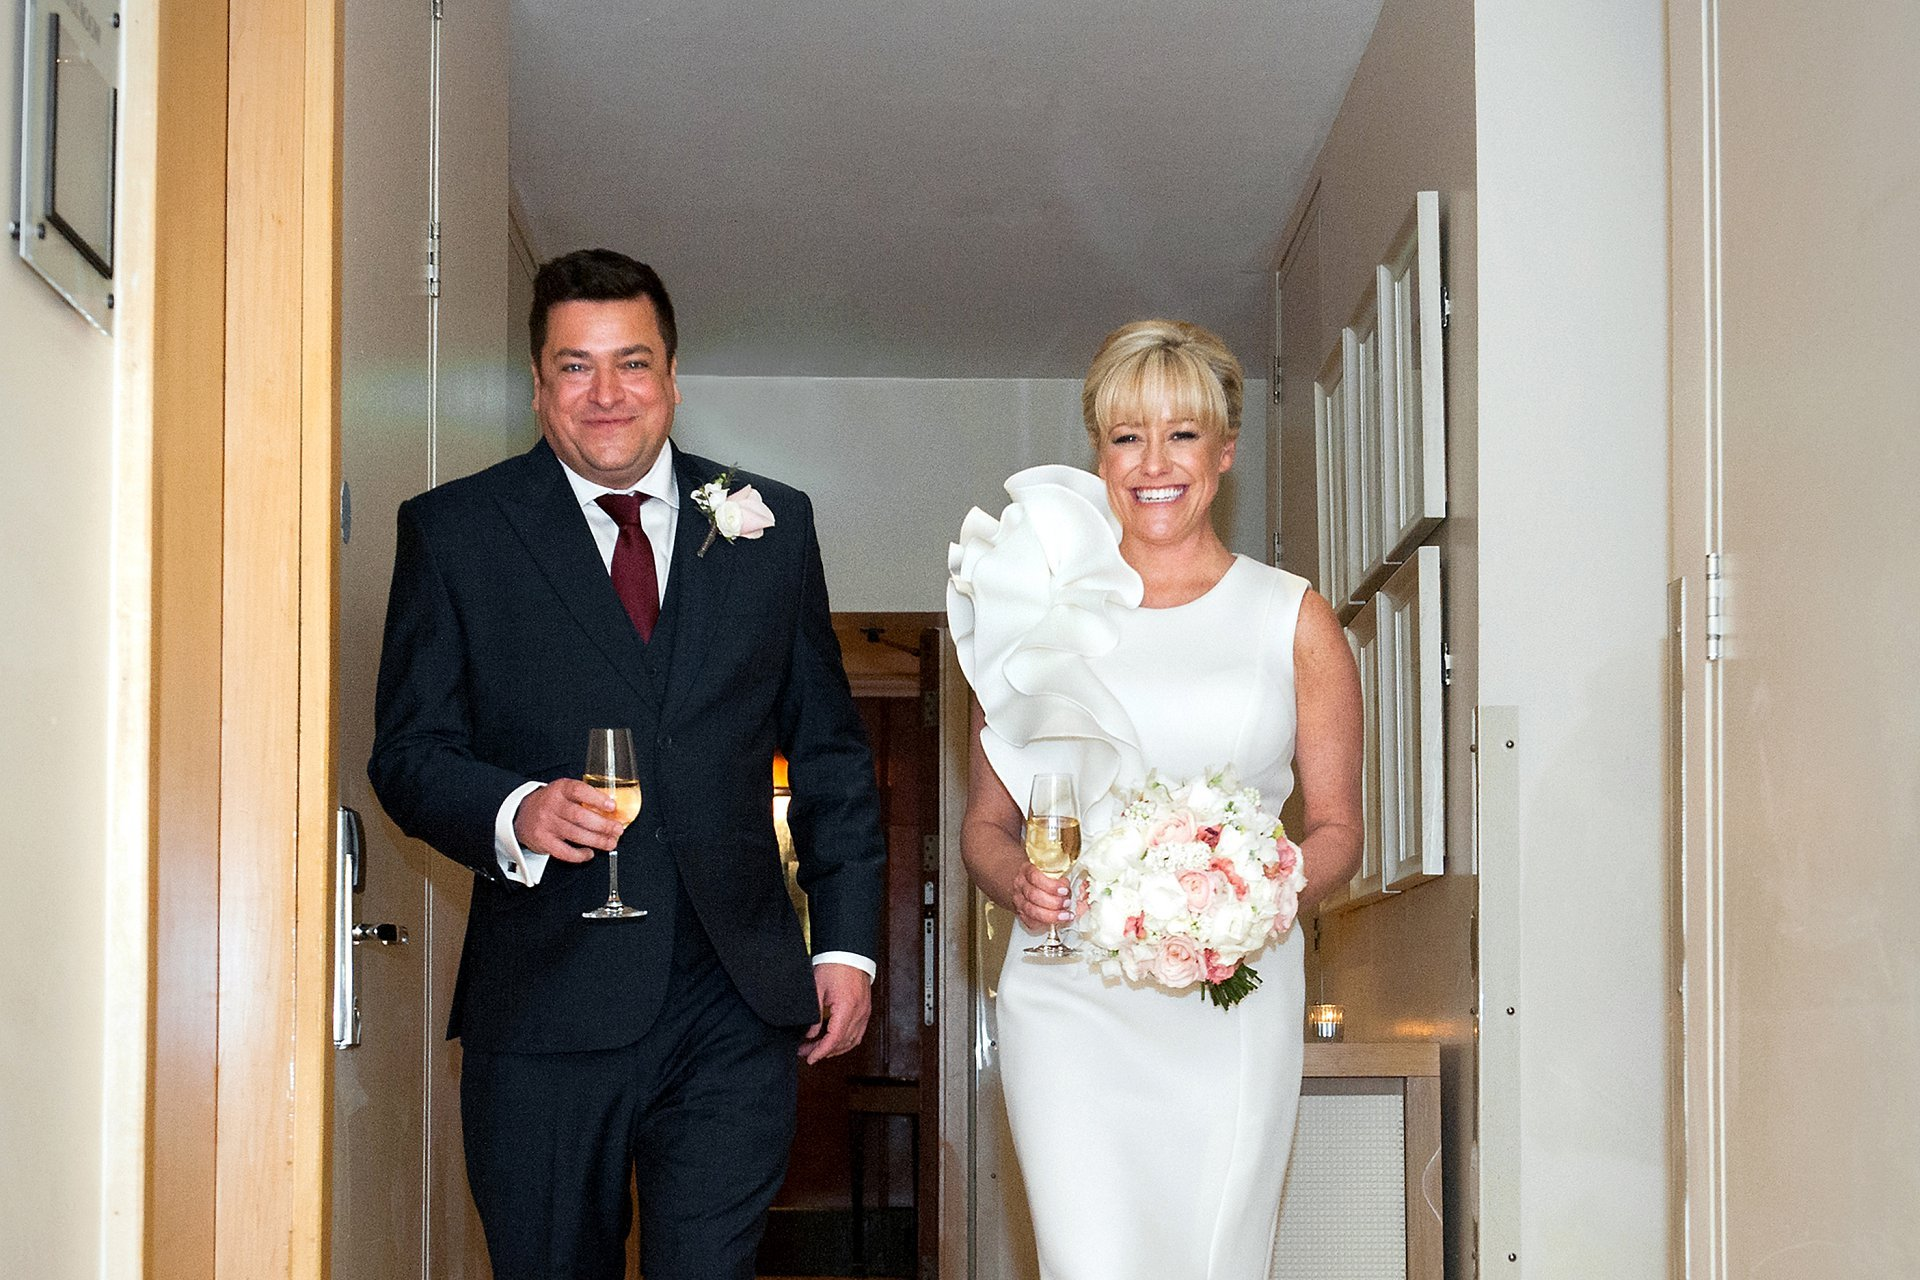 Bride & Groom enter the Garden Room at Jumeirah Carlton Tower for their wedding reception